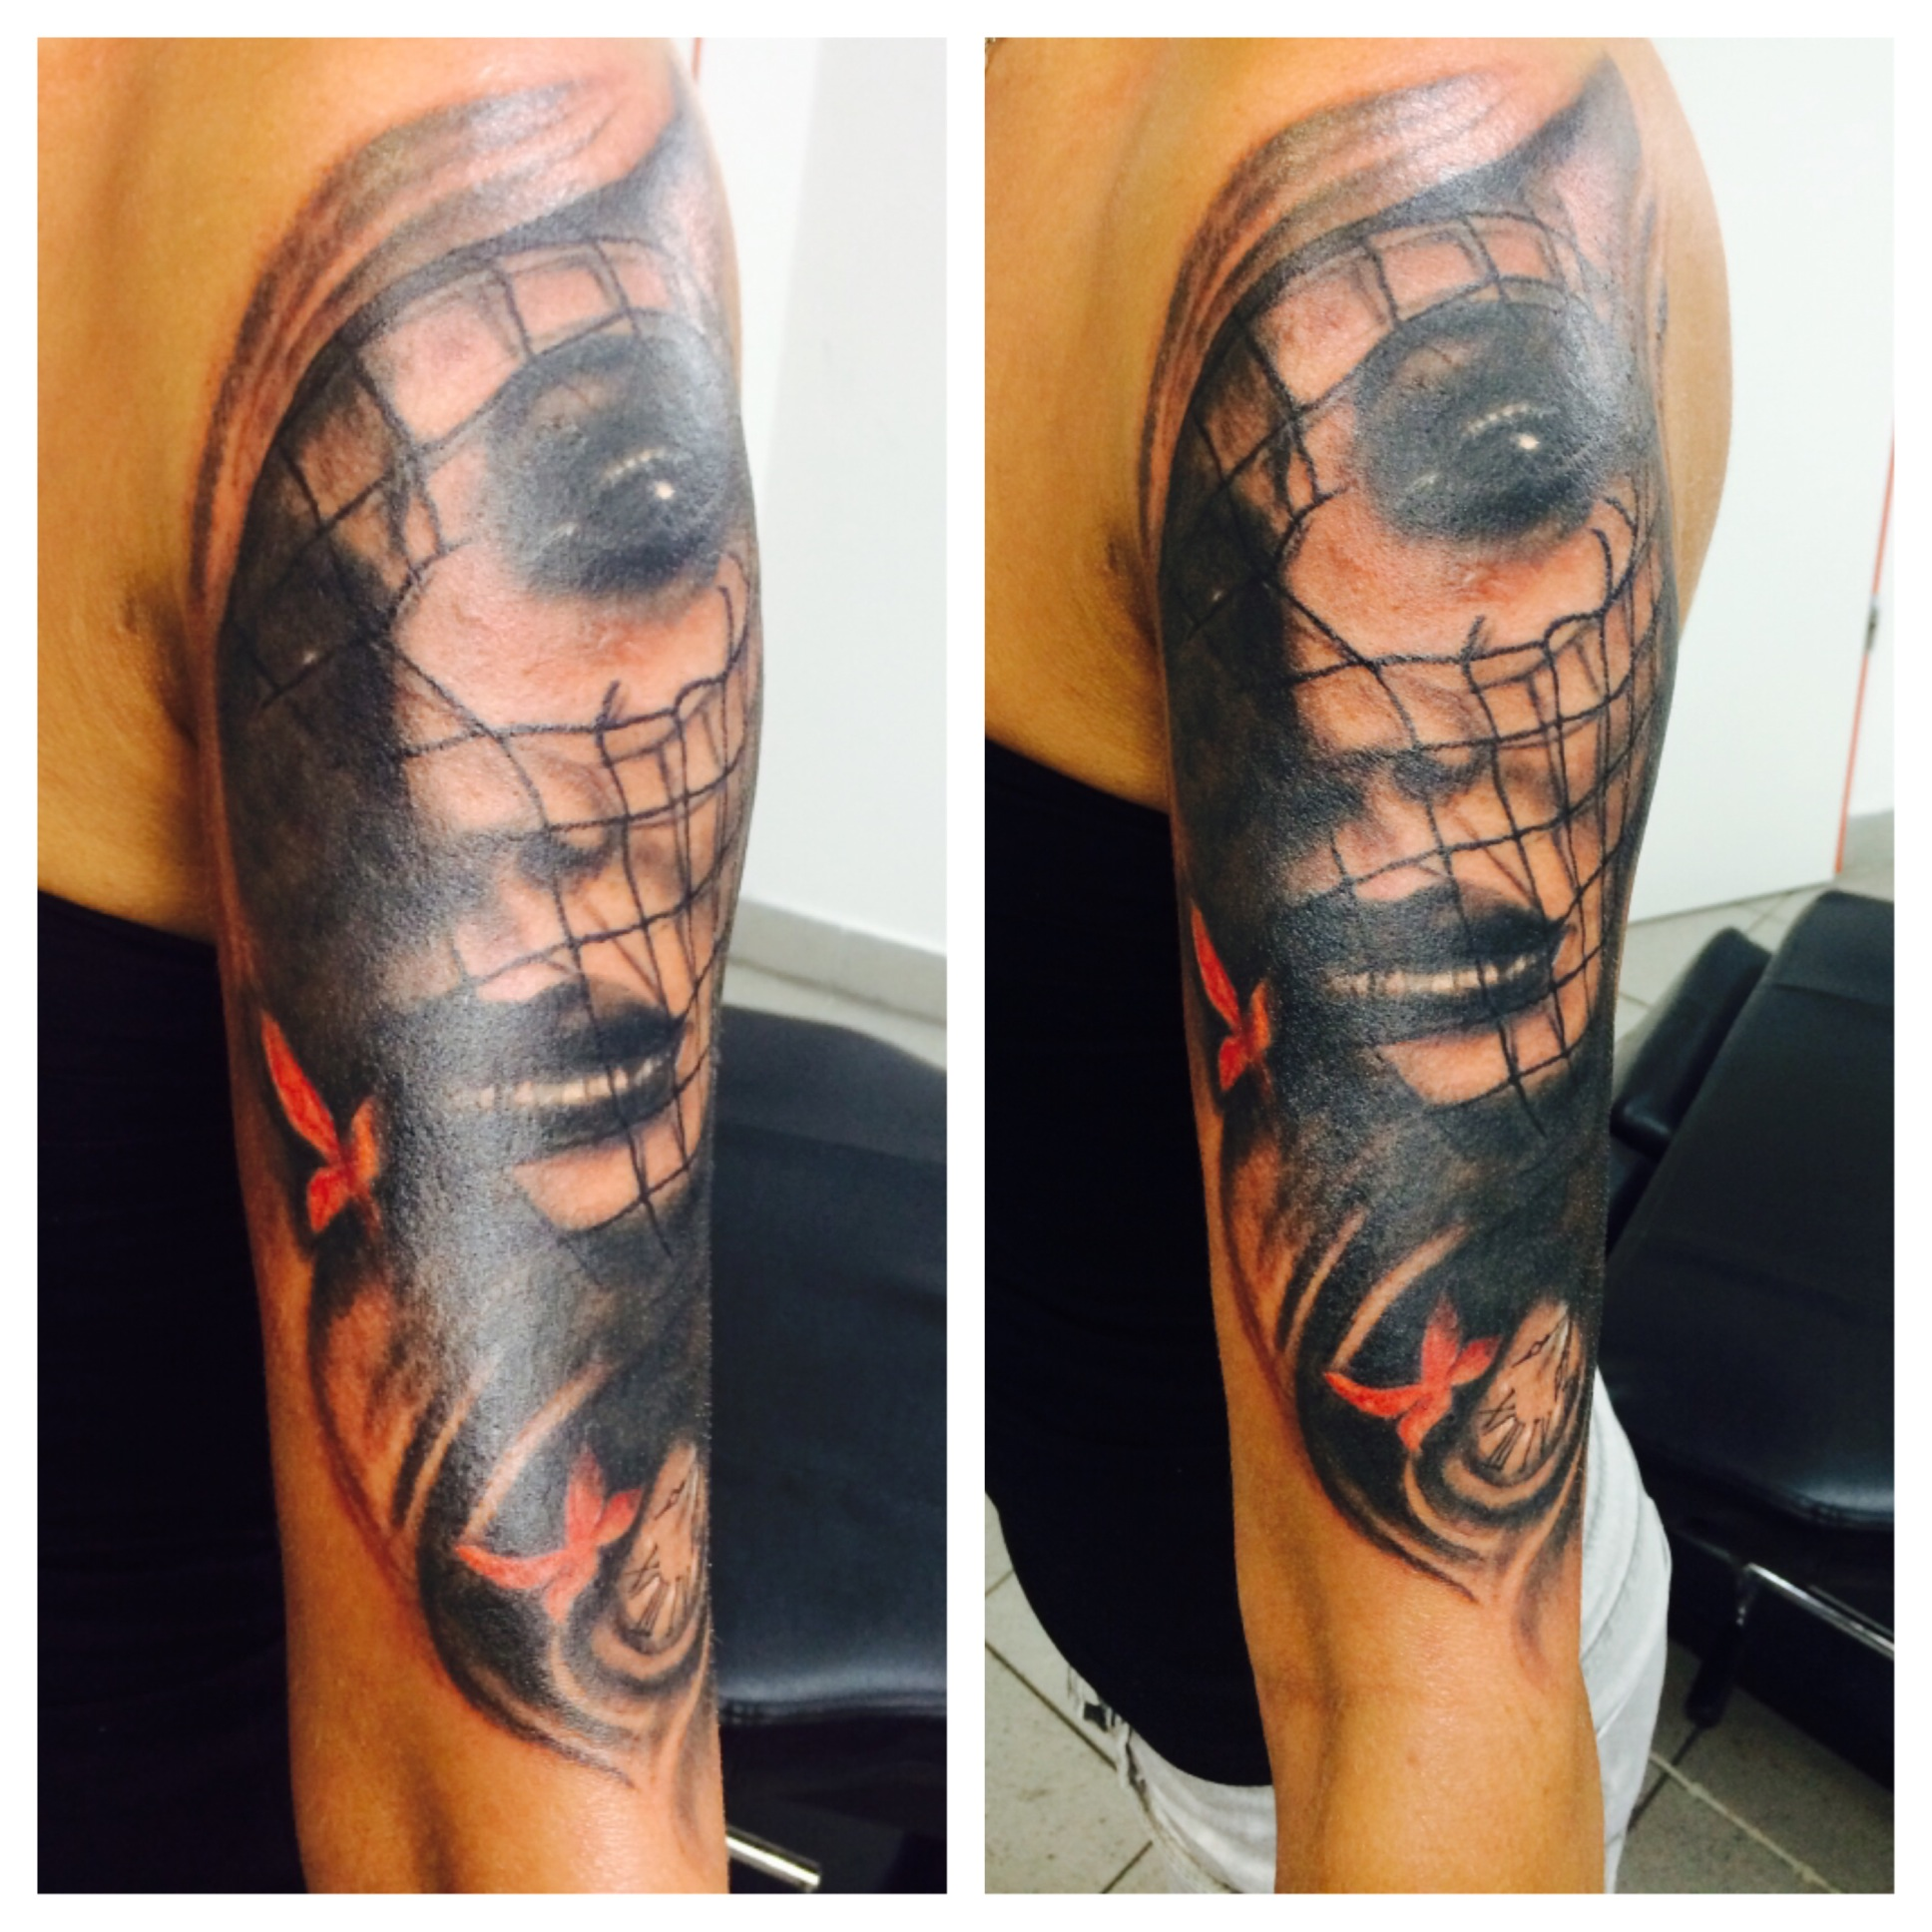 Stichprobe tattoo lifestyle munich ink clothing for Ich suche arbeit in munchen